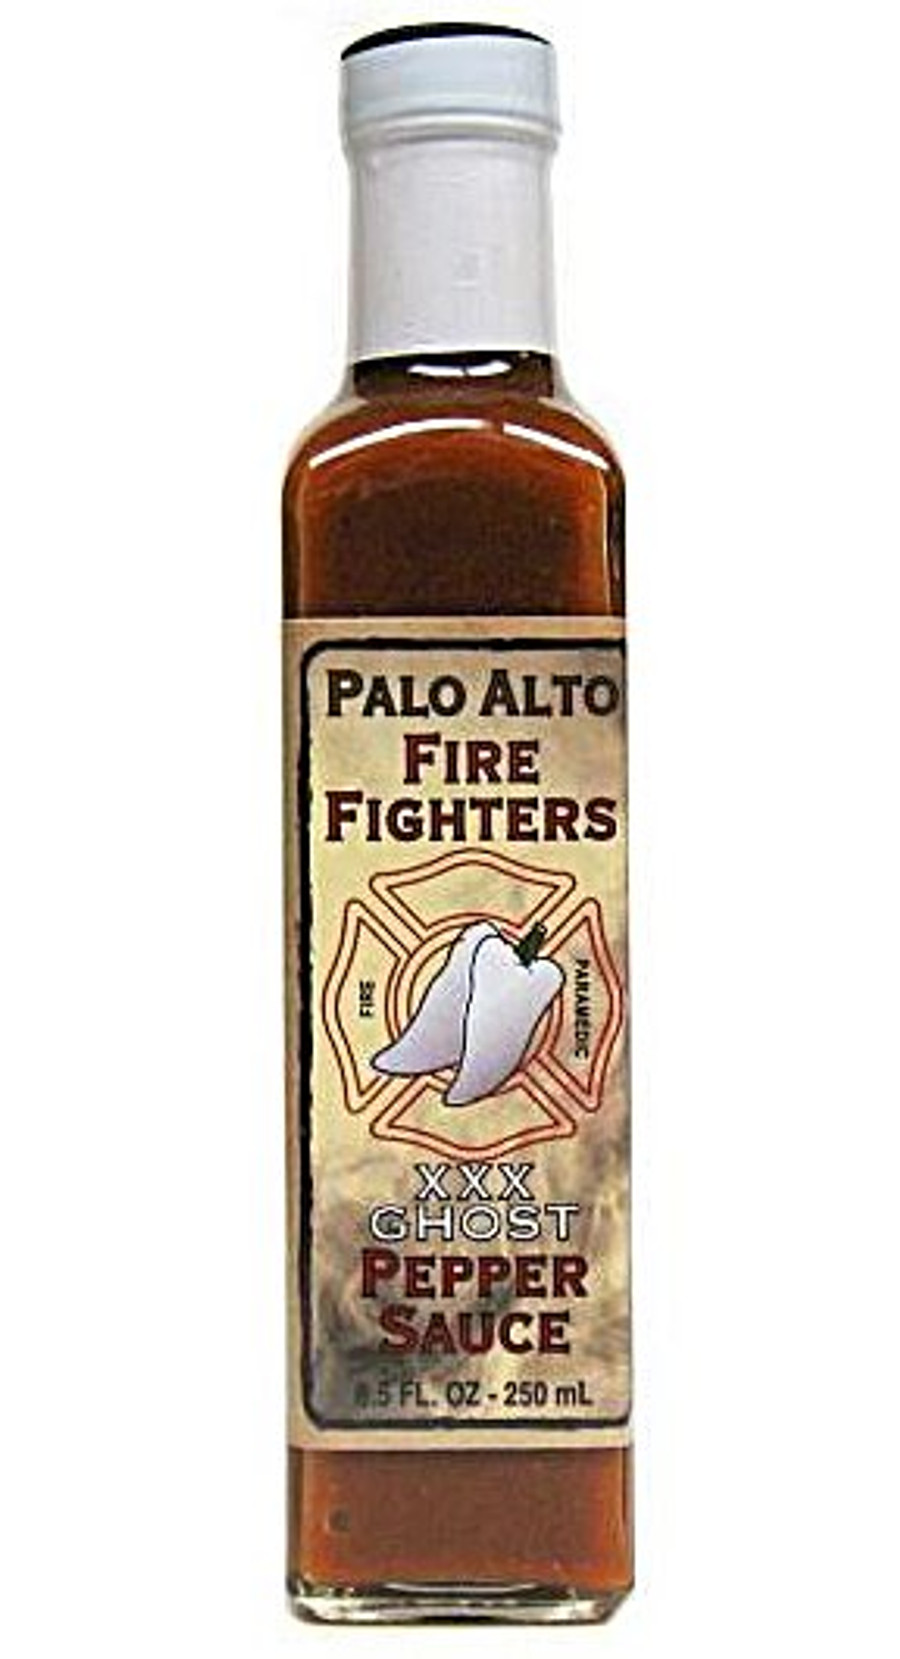 Palo Alto Firefighters Ghost Pepper Sauce is available now at PepperExplosion.com